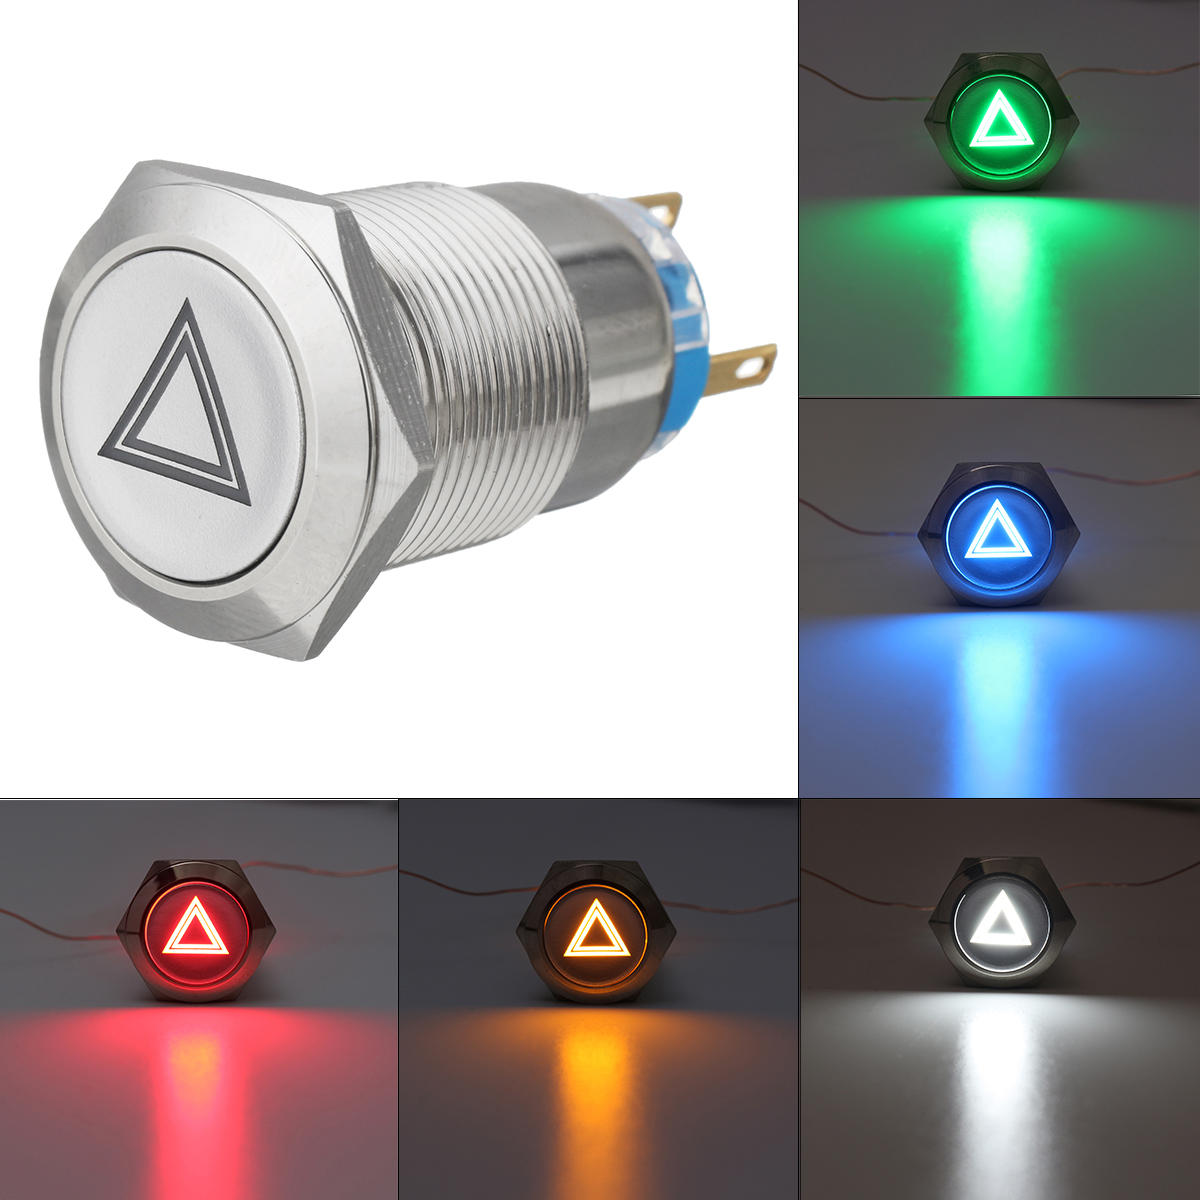 19mm 12V IP65 Push Button Switch Dome Light LED ON/OFF Switches